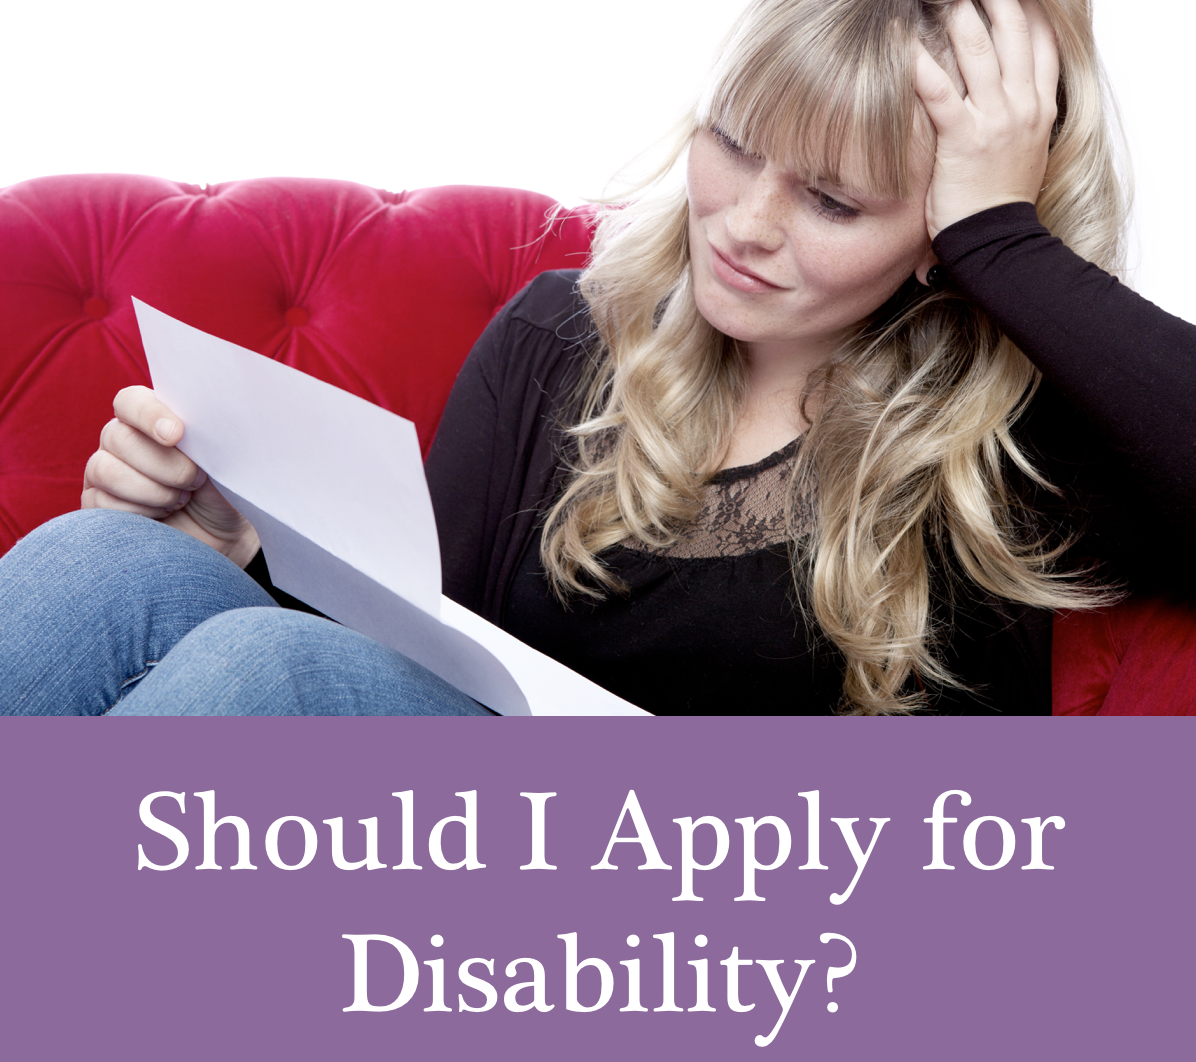 Should I Apply for Disability if I have a disability?